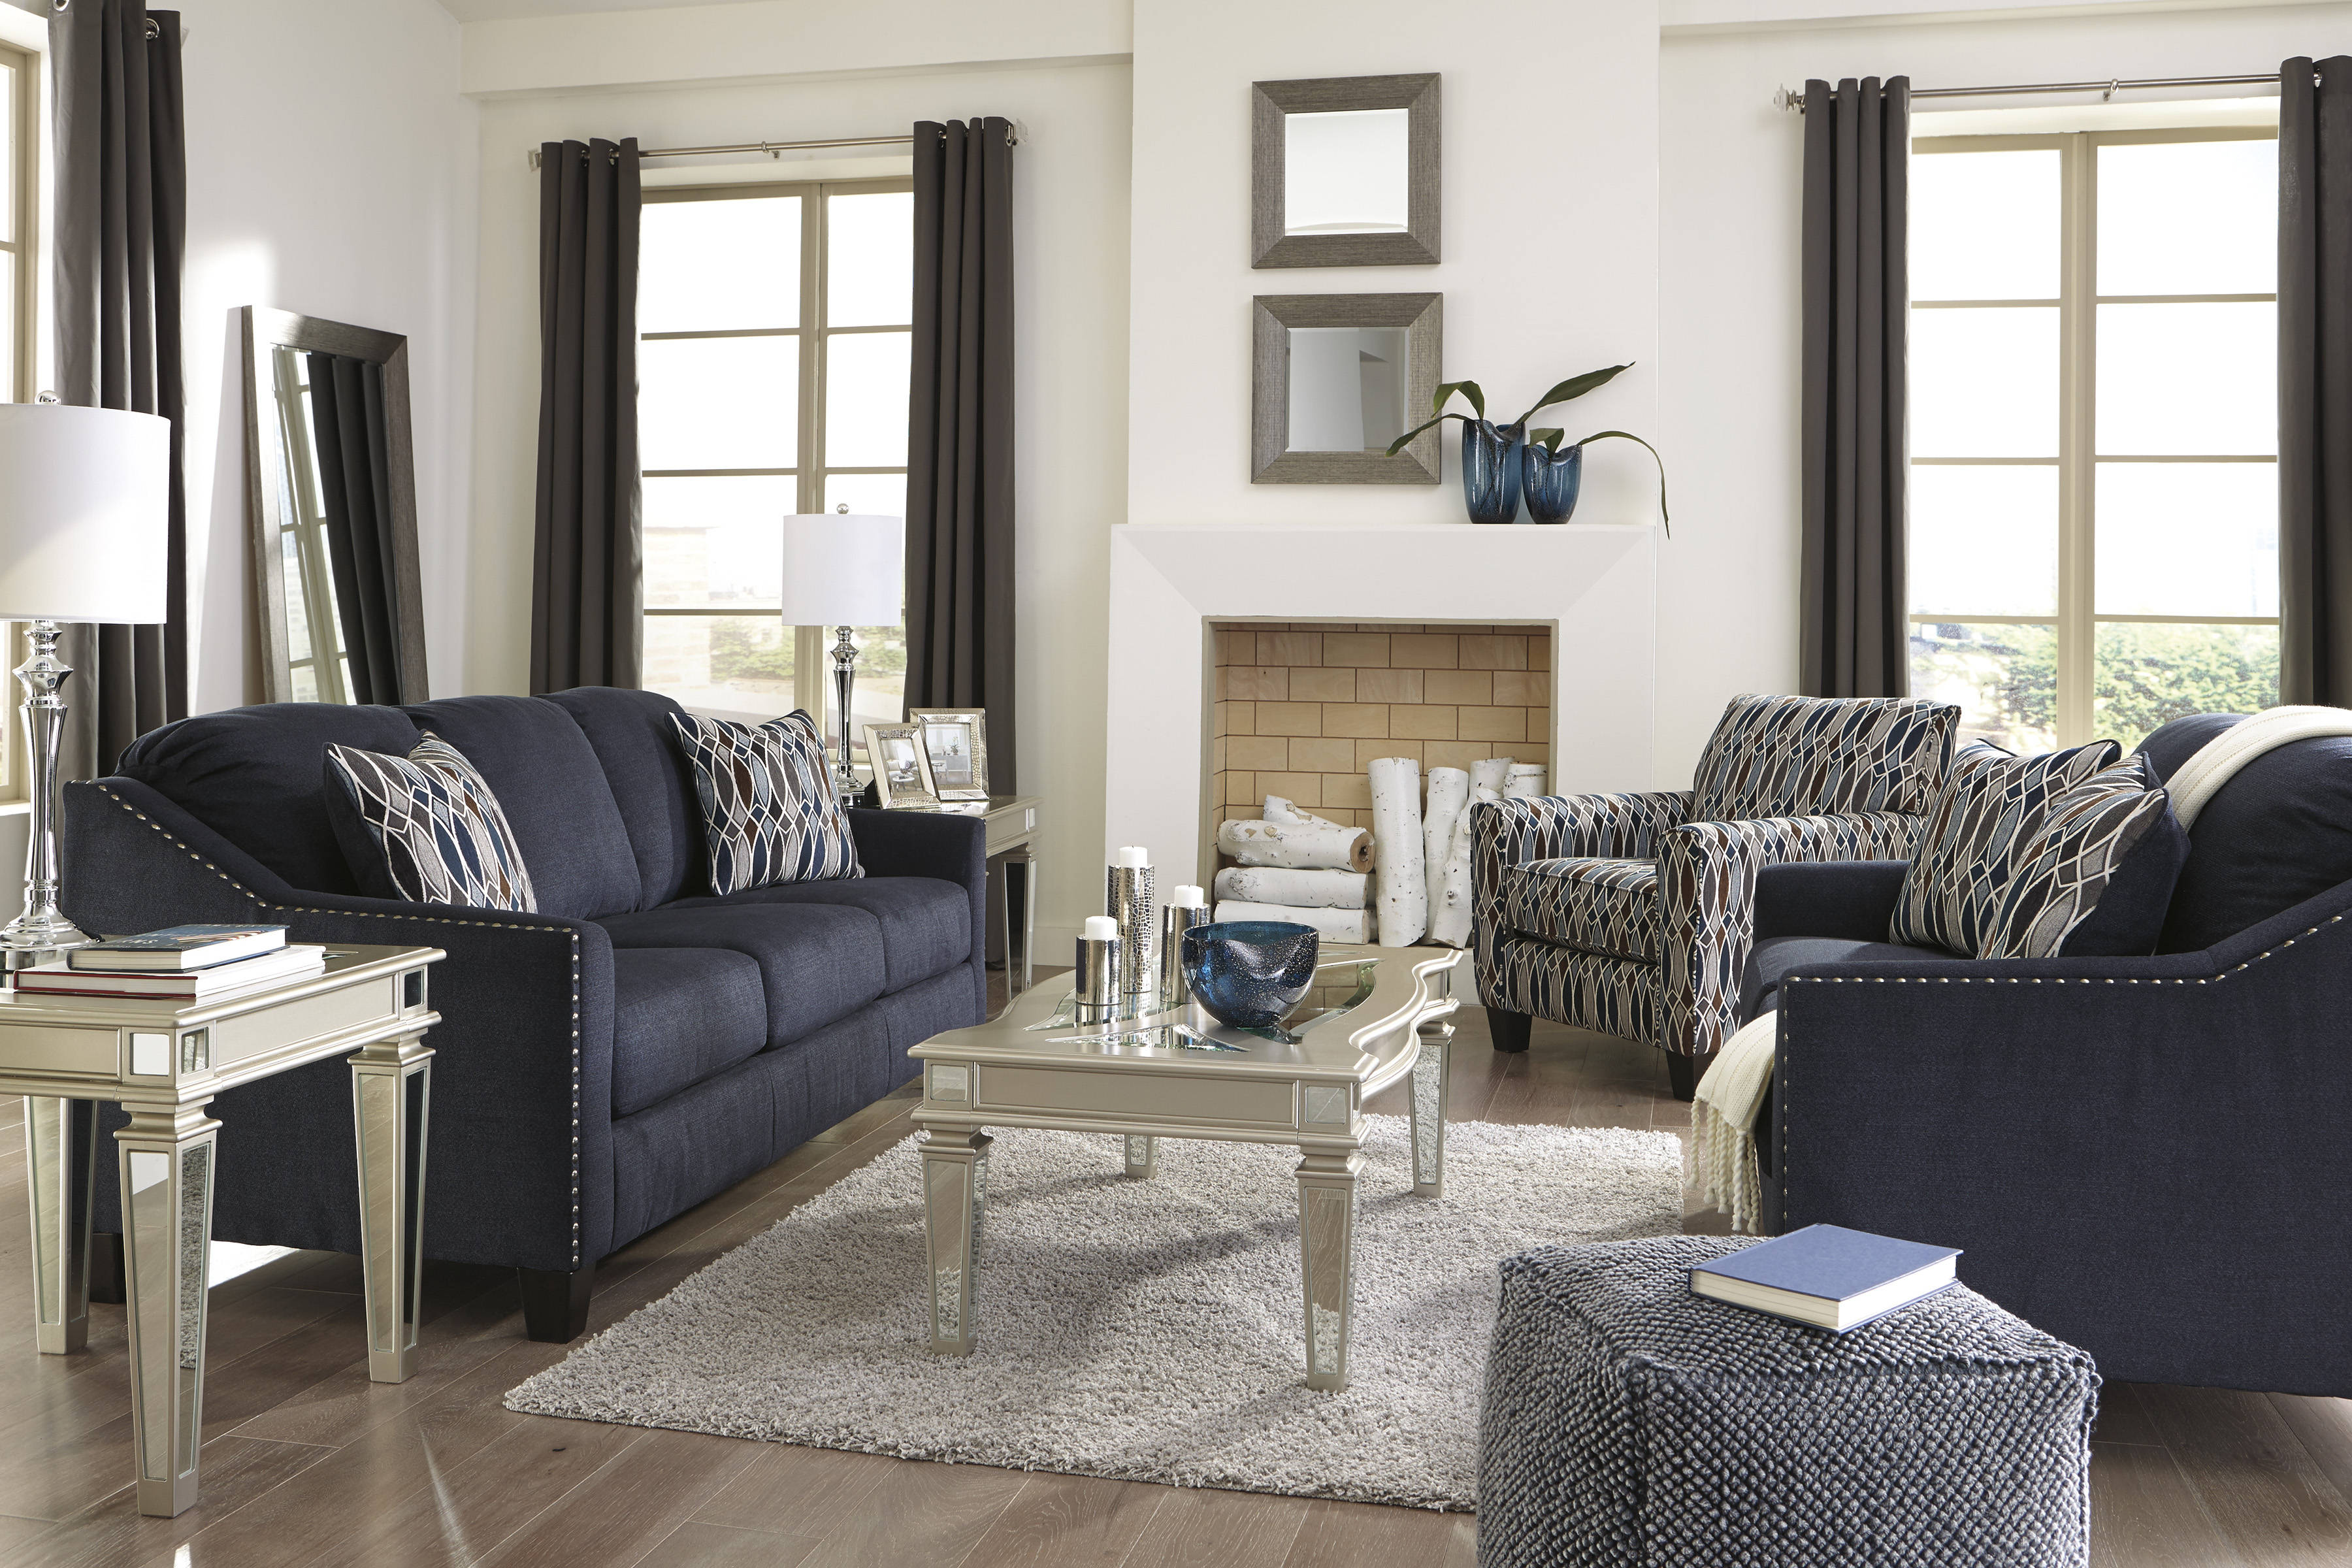 Ashley Furniture Creeal Heights Ink 3pc Living Room Set ...